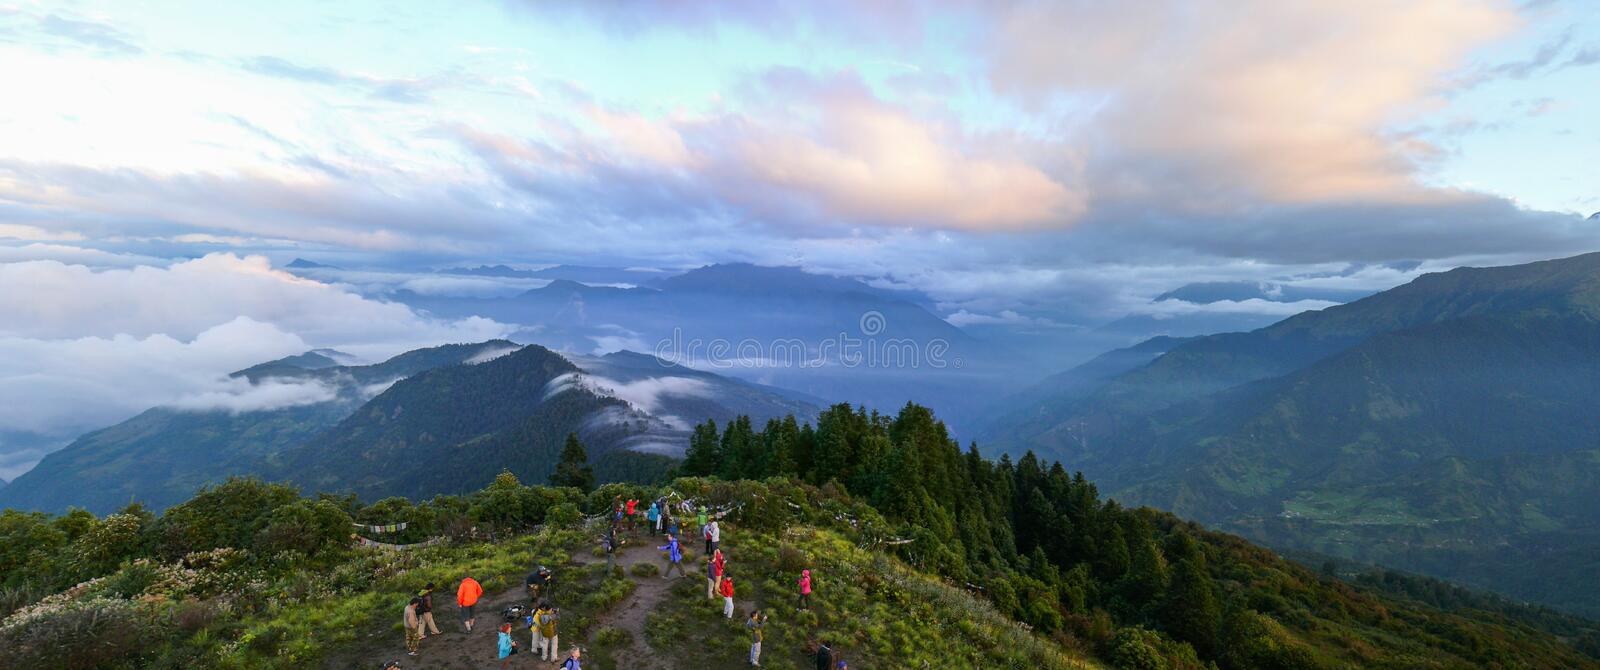 Tourists at Poon Hill, Nepal stock image